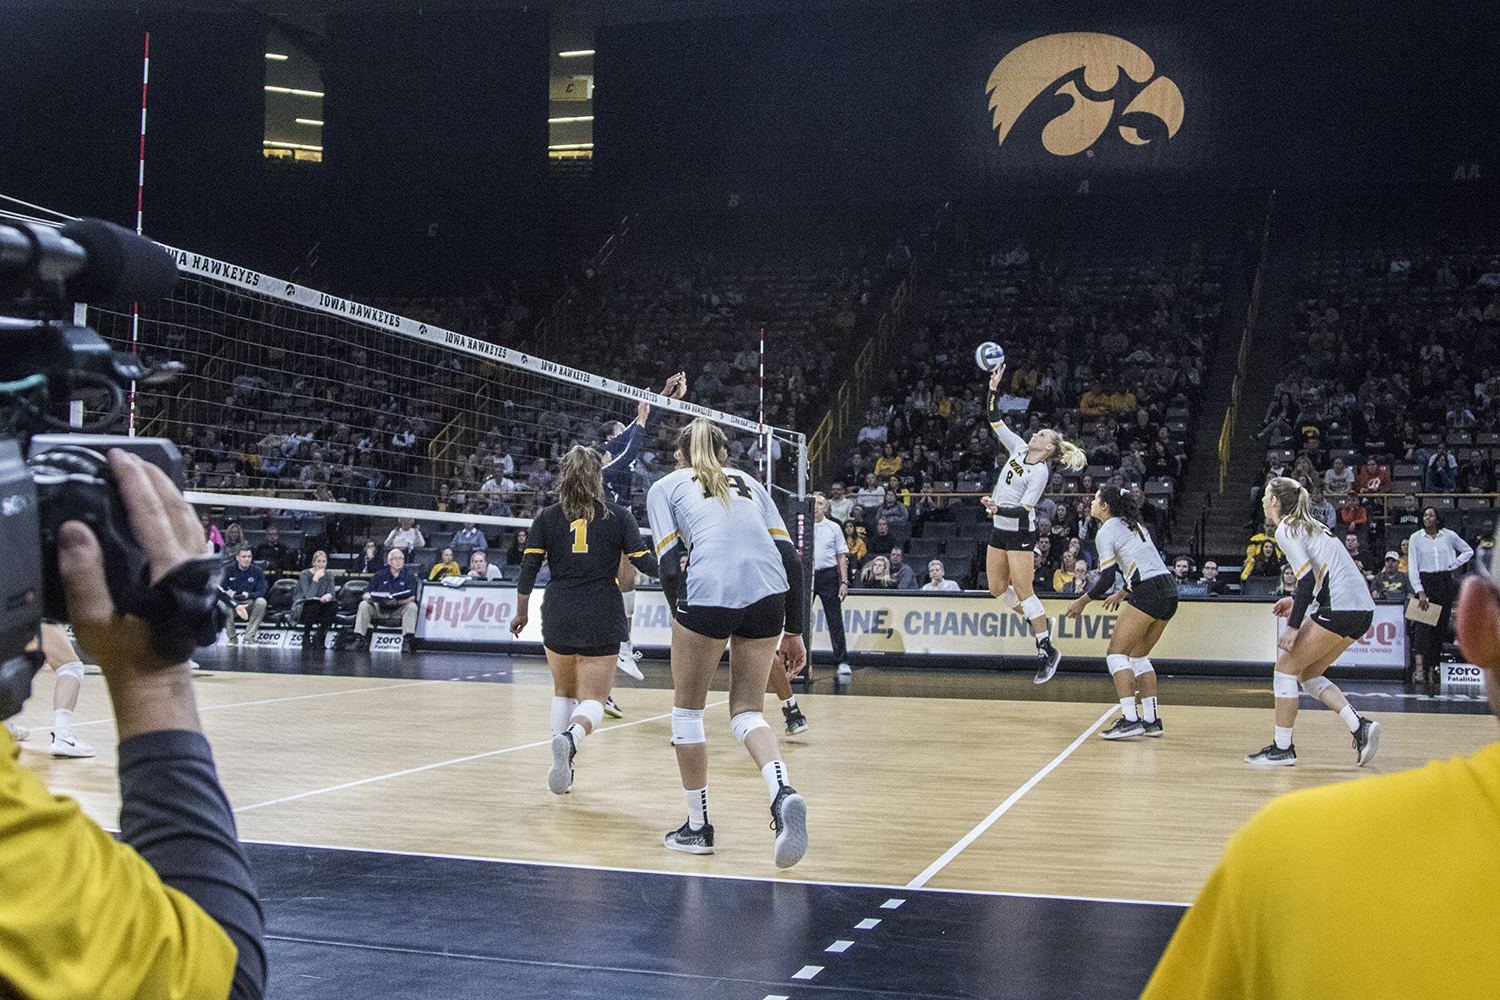 Iowa+senior+Reghan+Coyle+spikes+the+ball+during+a+volleyball+match+between+Iowa+and+Penn+State+at+Carver-Hawkeye+Arena+on+Saturday%2C+Nov.+3%2C+2018.+The+Hawkeyes+were+shut+out+by+the+Nittany+Lions%2C+3-0.